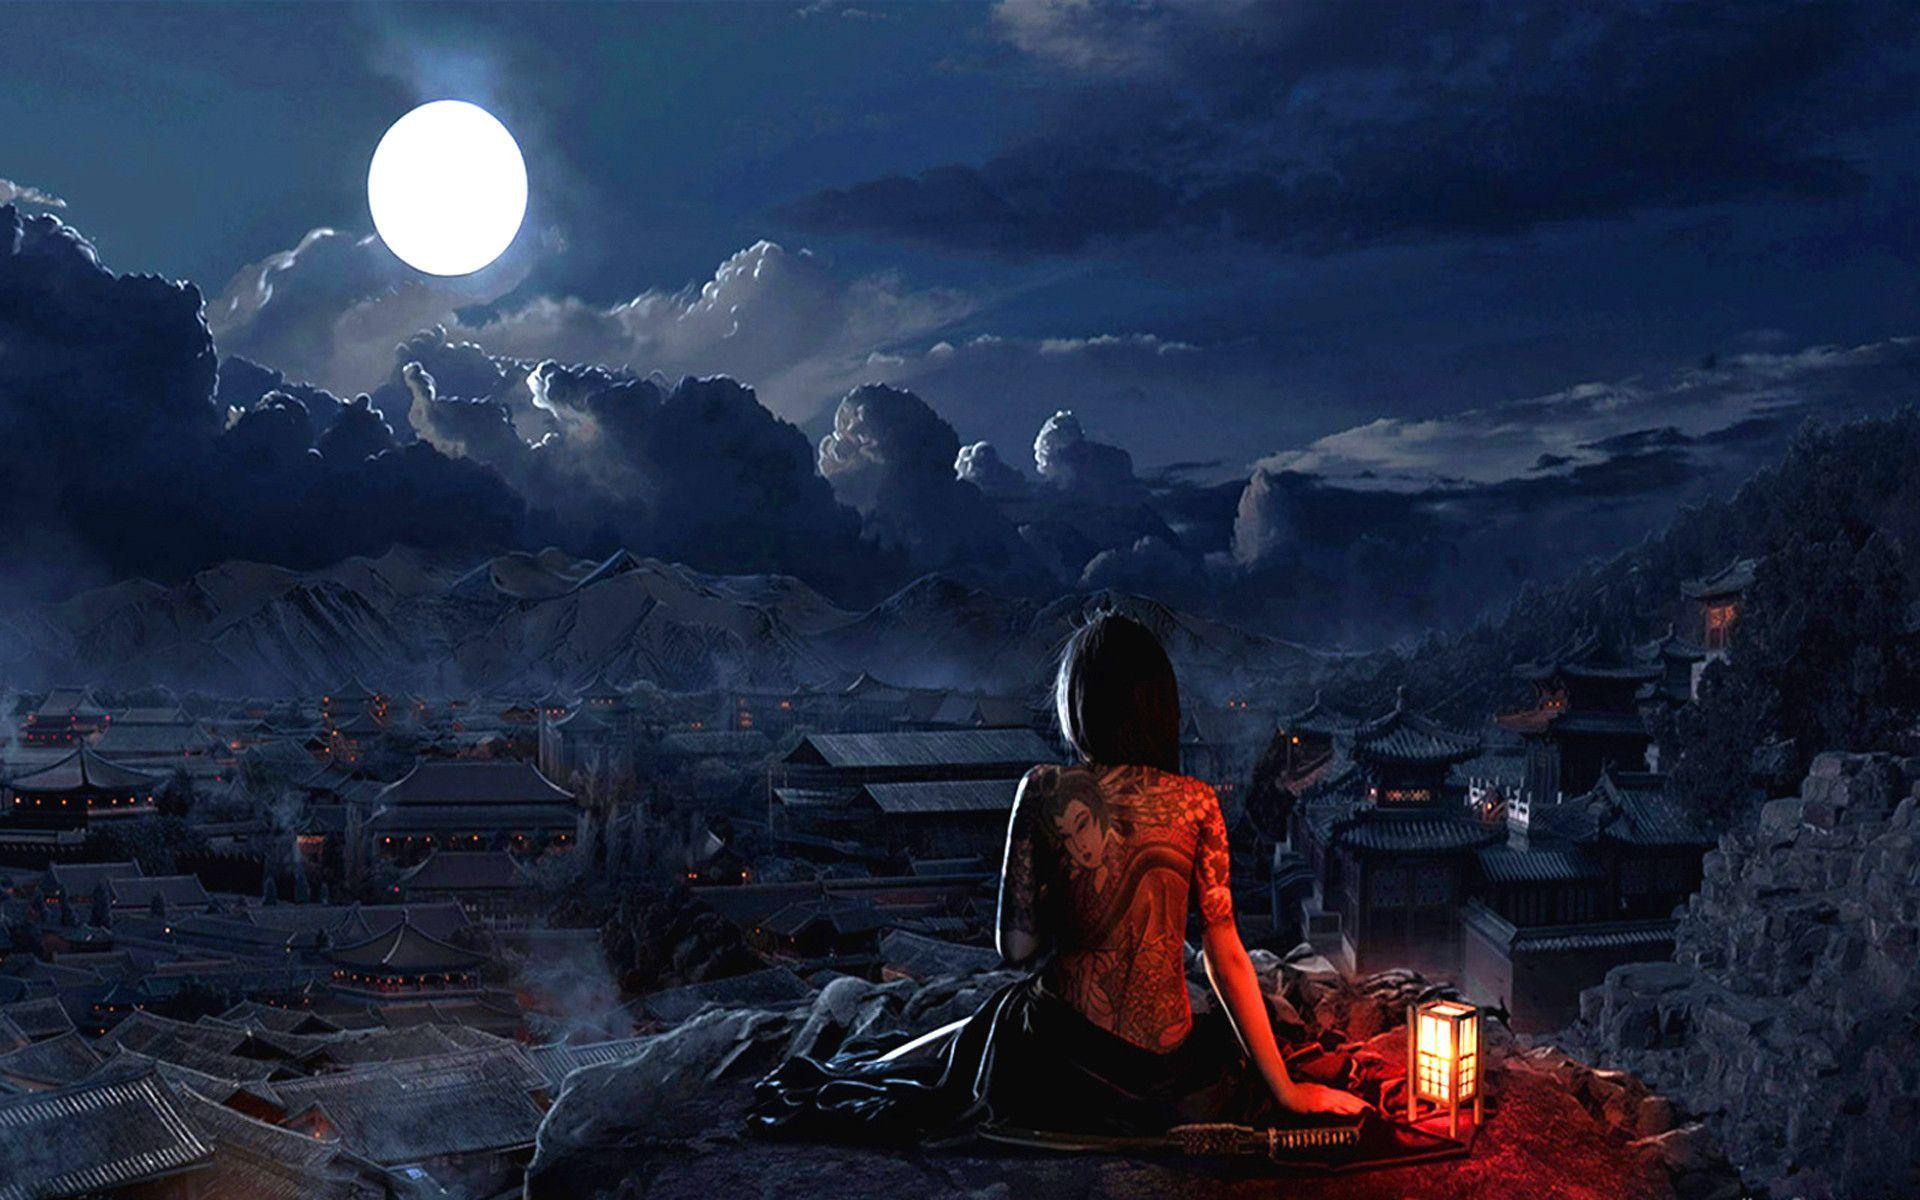 Girl With Tatto Full Moon Wallpaper #3828 Wallpaper | Wallshed.